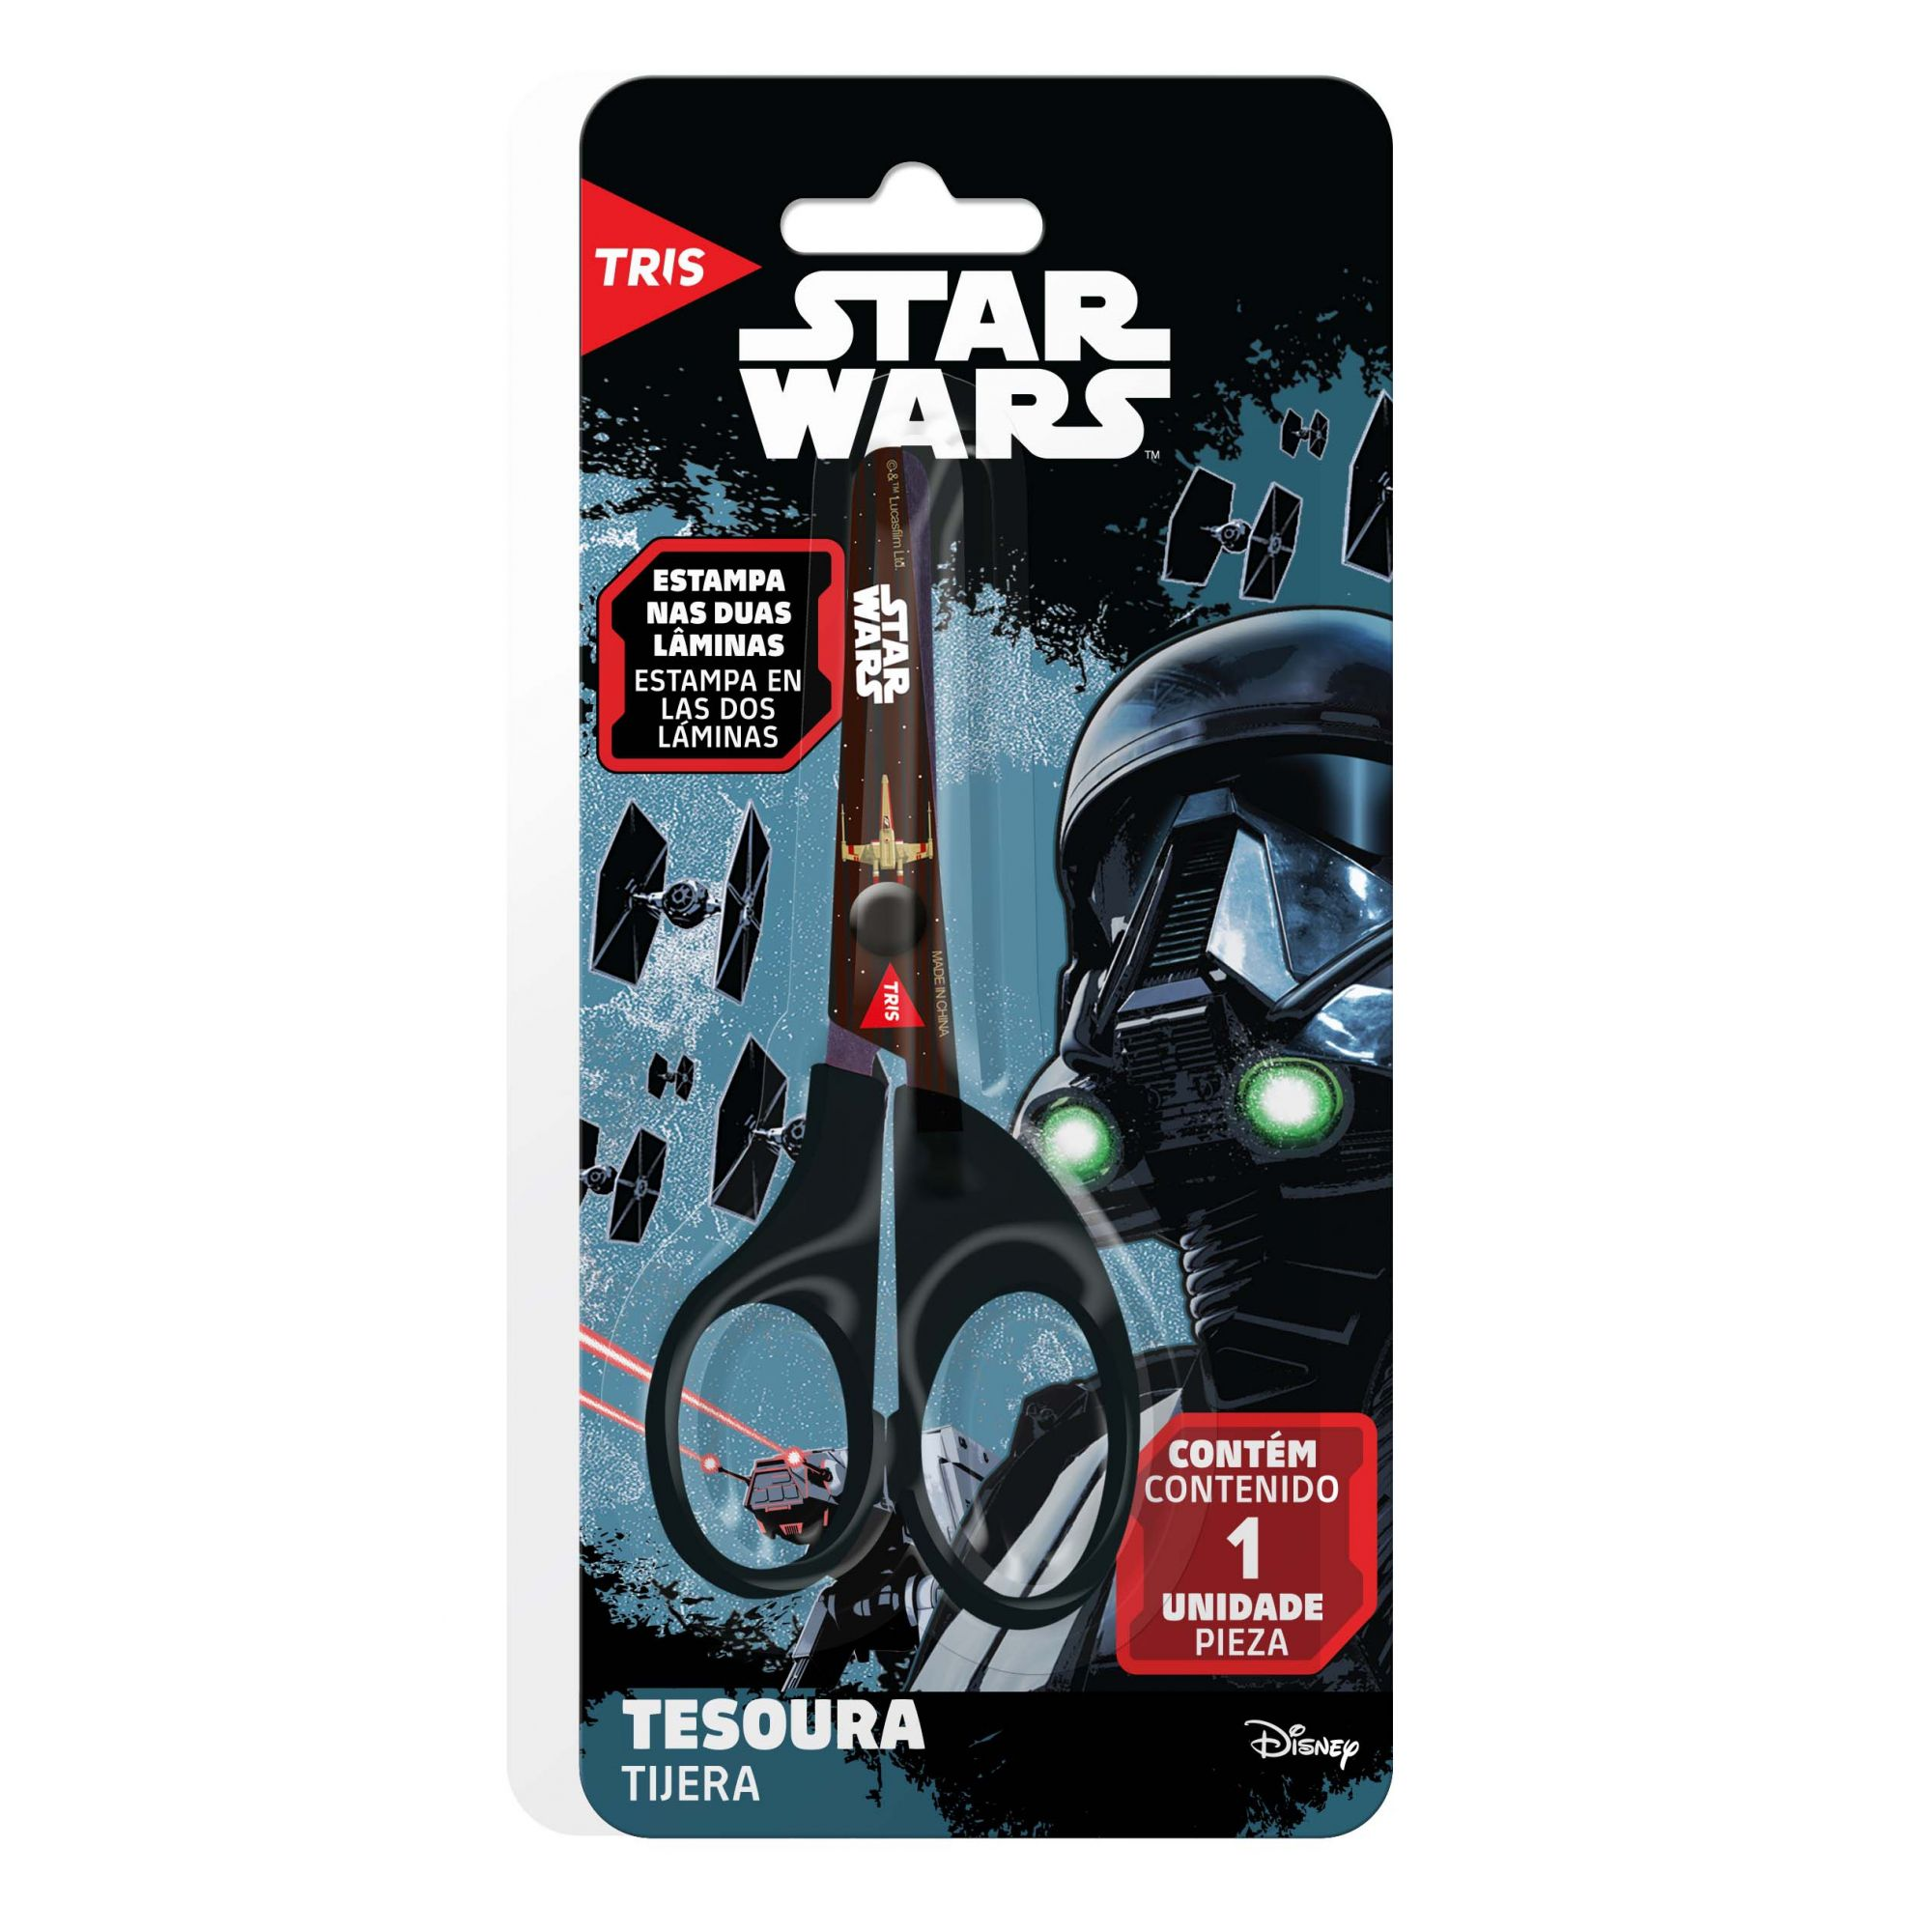 Tesoura Escolar Star Wars - Tris